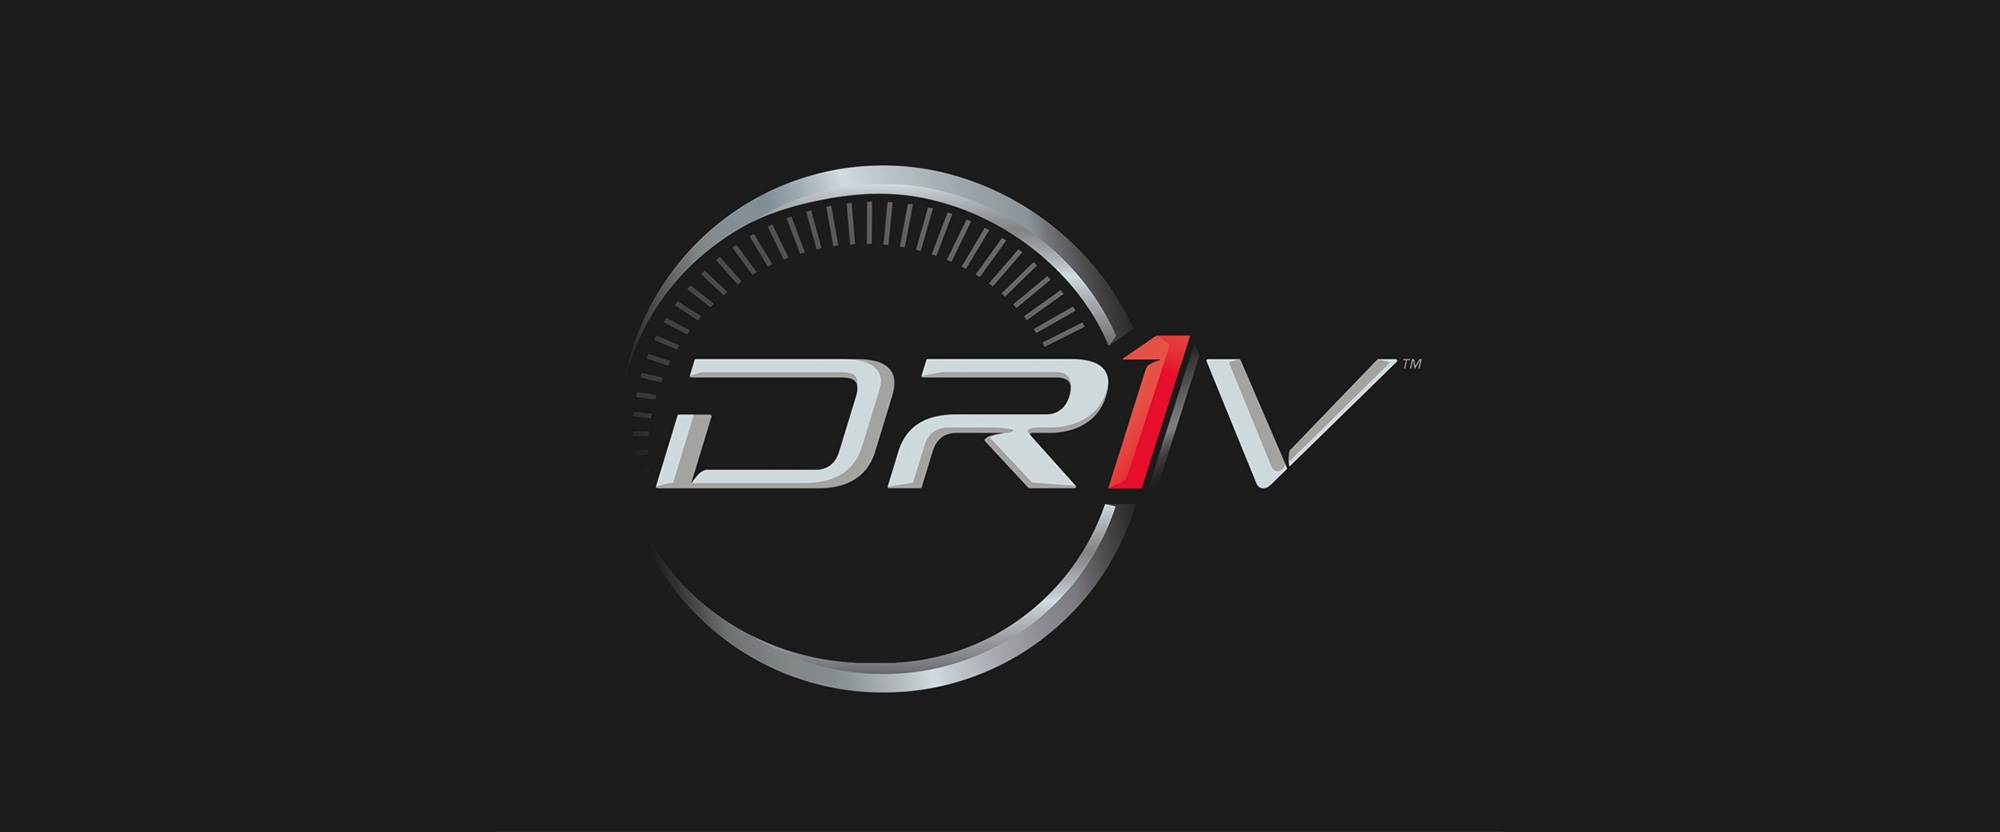 New Name and Logo for Driv